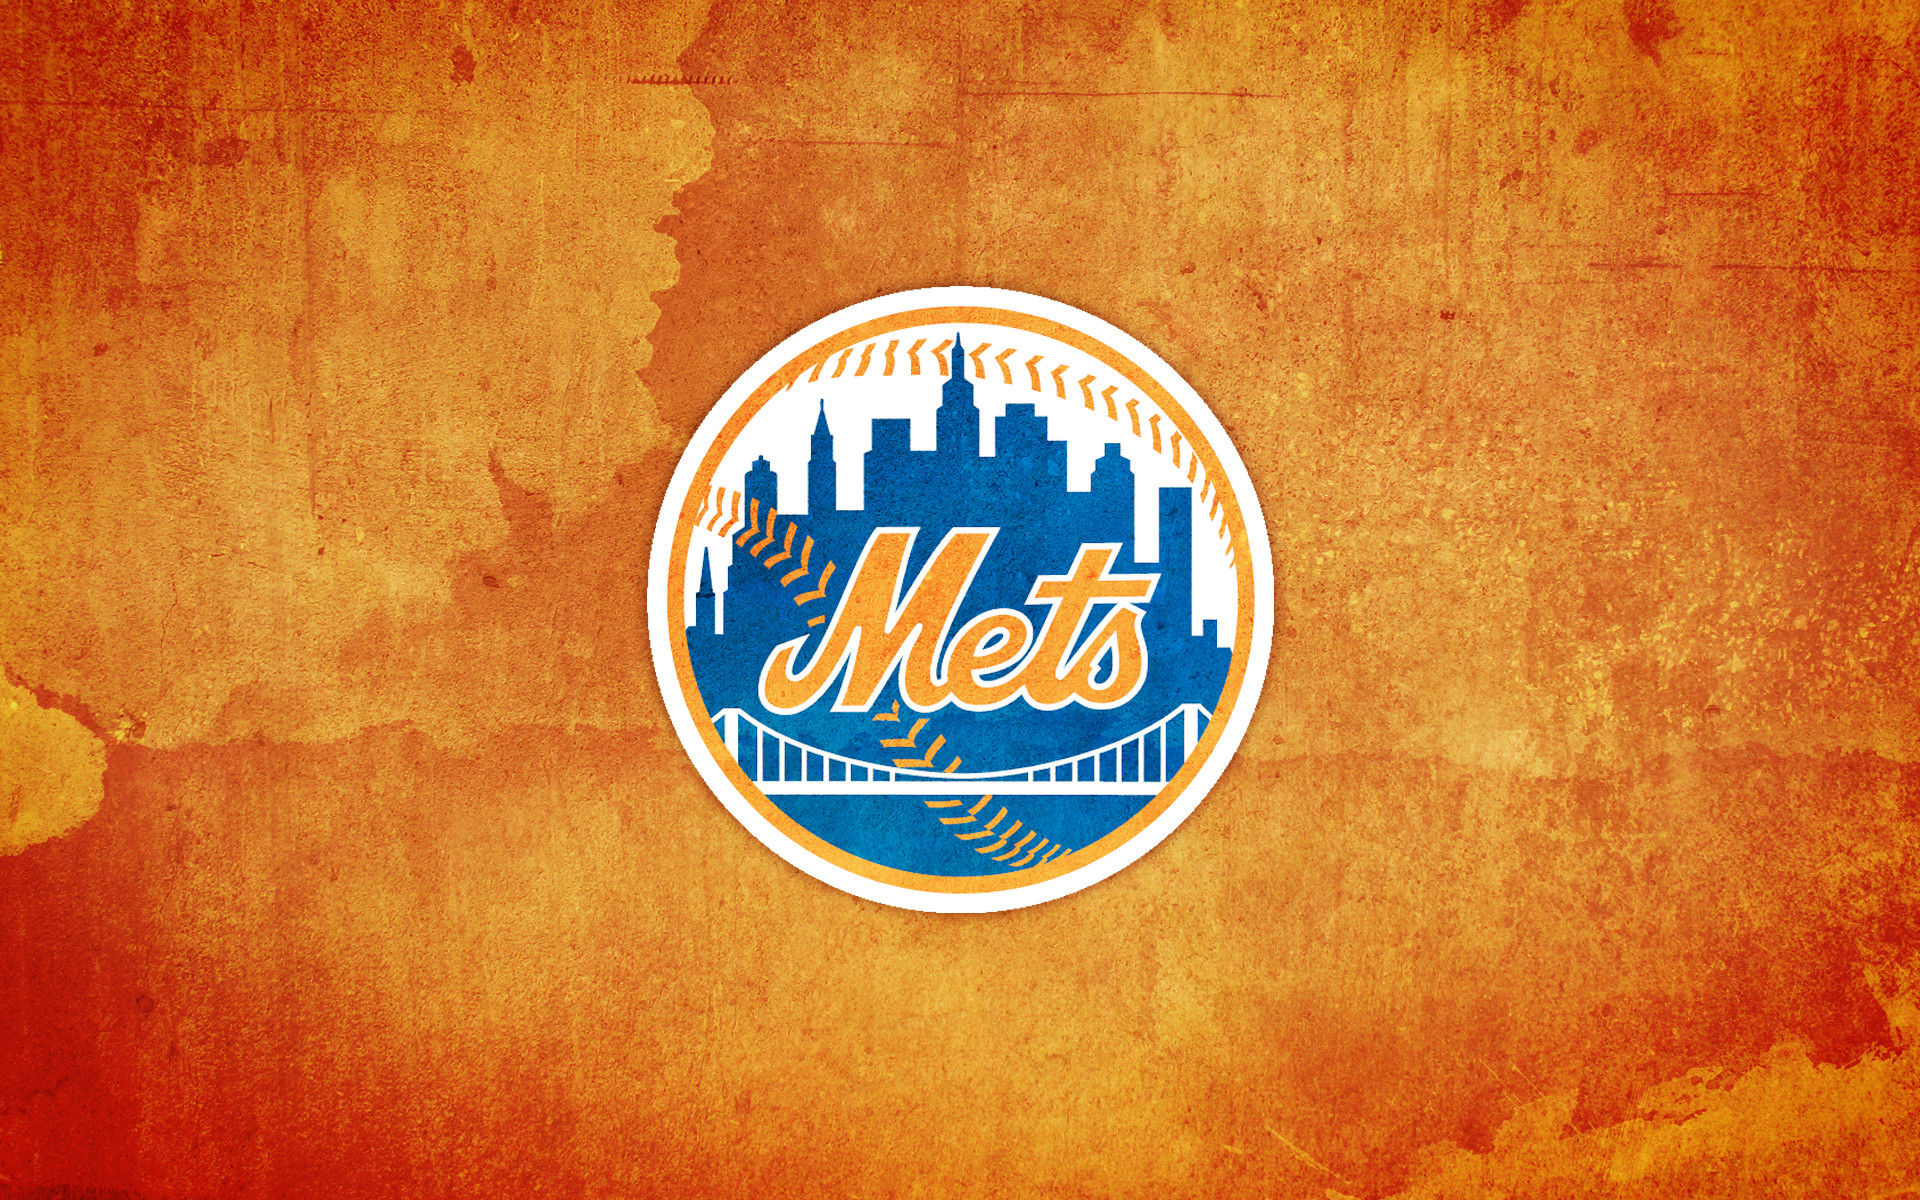 30 in 30: The New York Mets